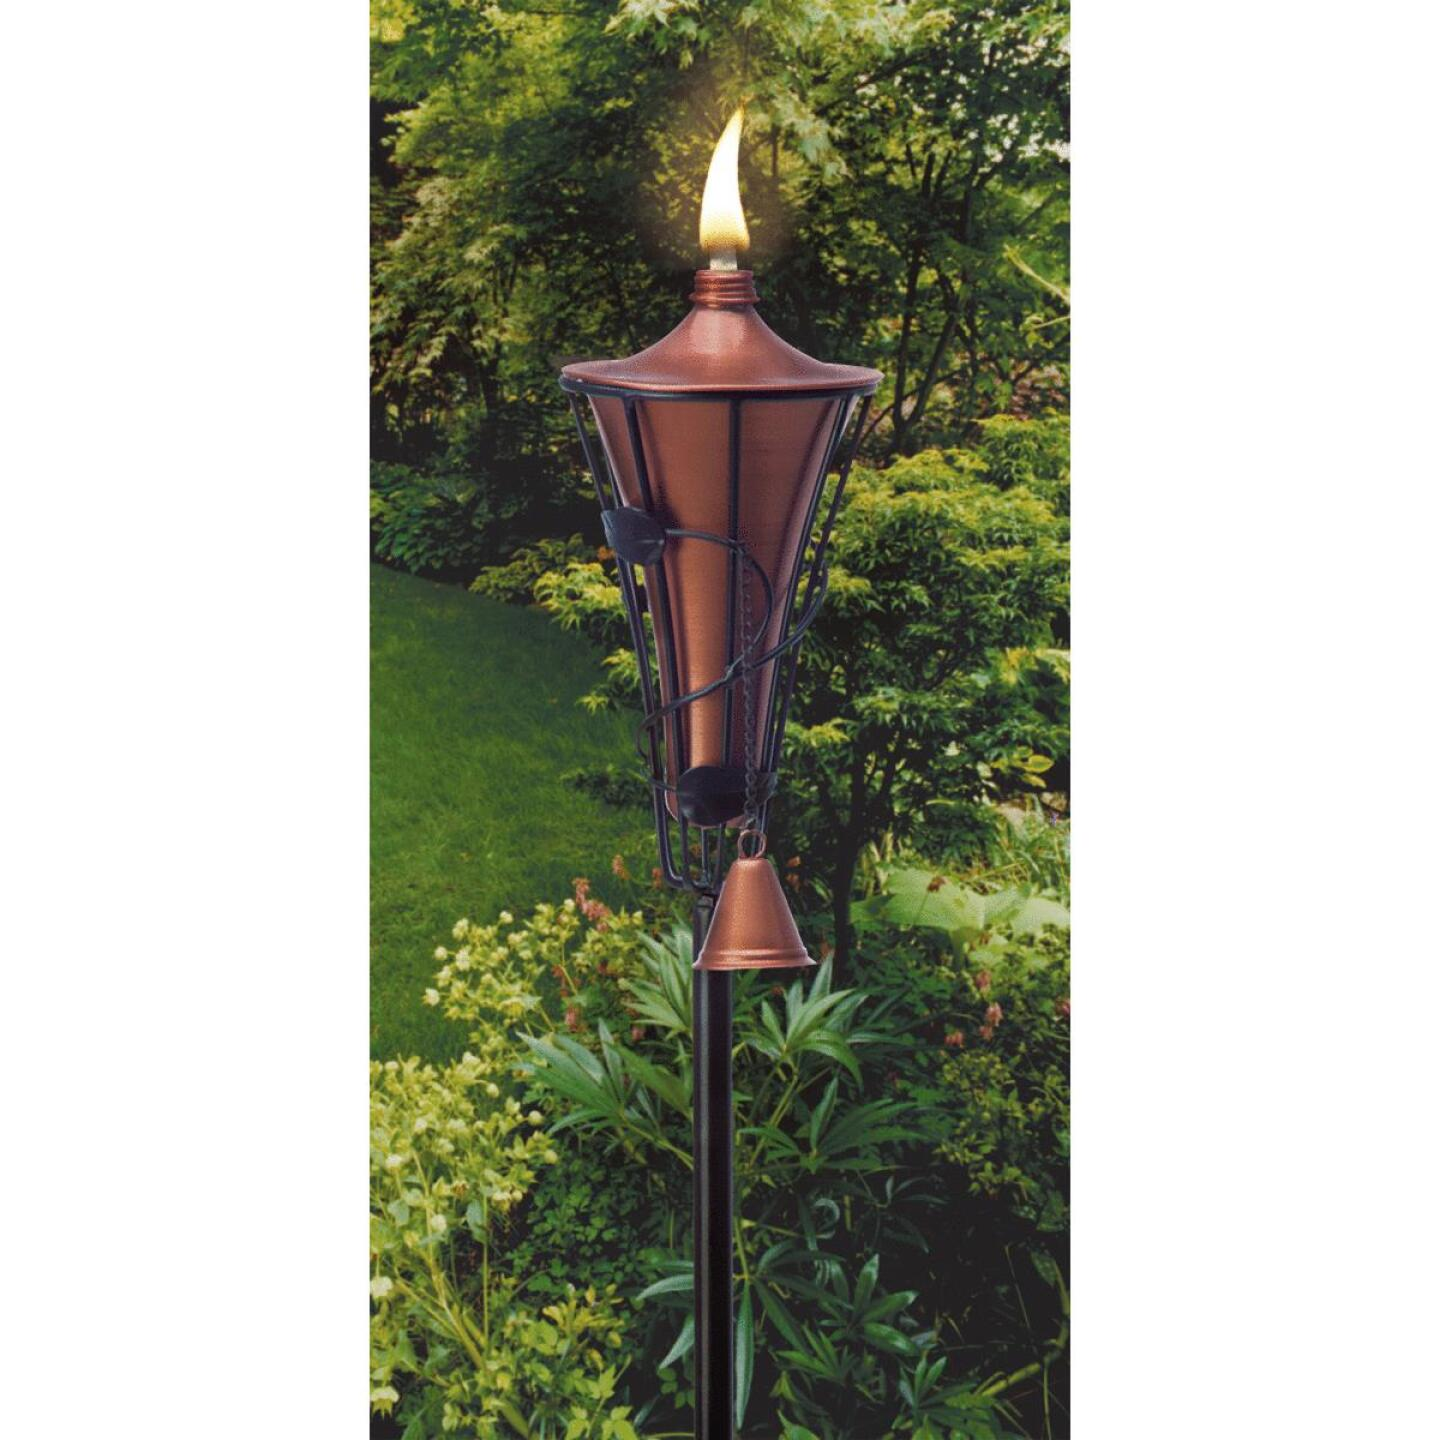 Outdoor Expressions 5 Ft. Copper Patio Torch Image 2